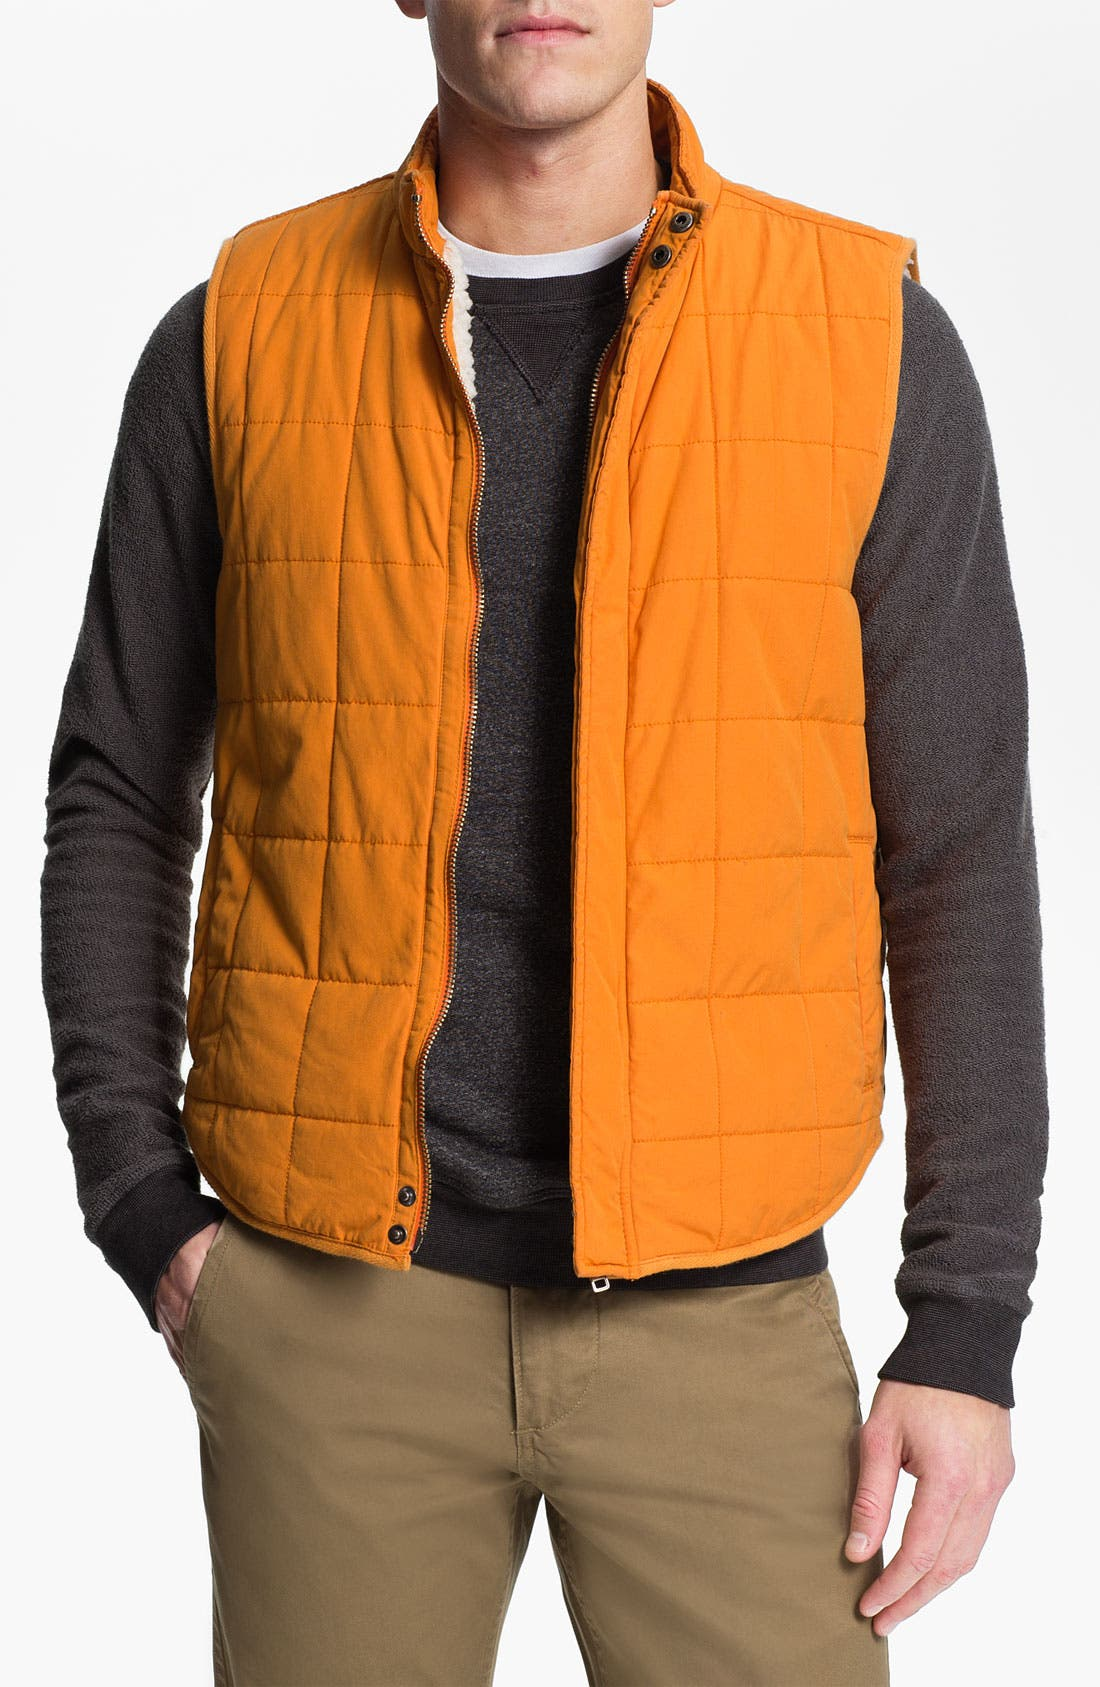 Alternate Image 1 Selected - Splendid Mills 'Wilson' Quilted Cotton Vest